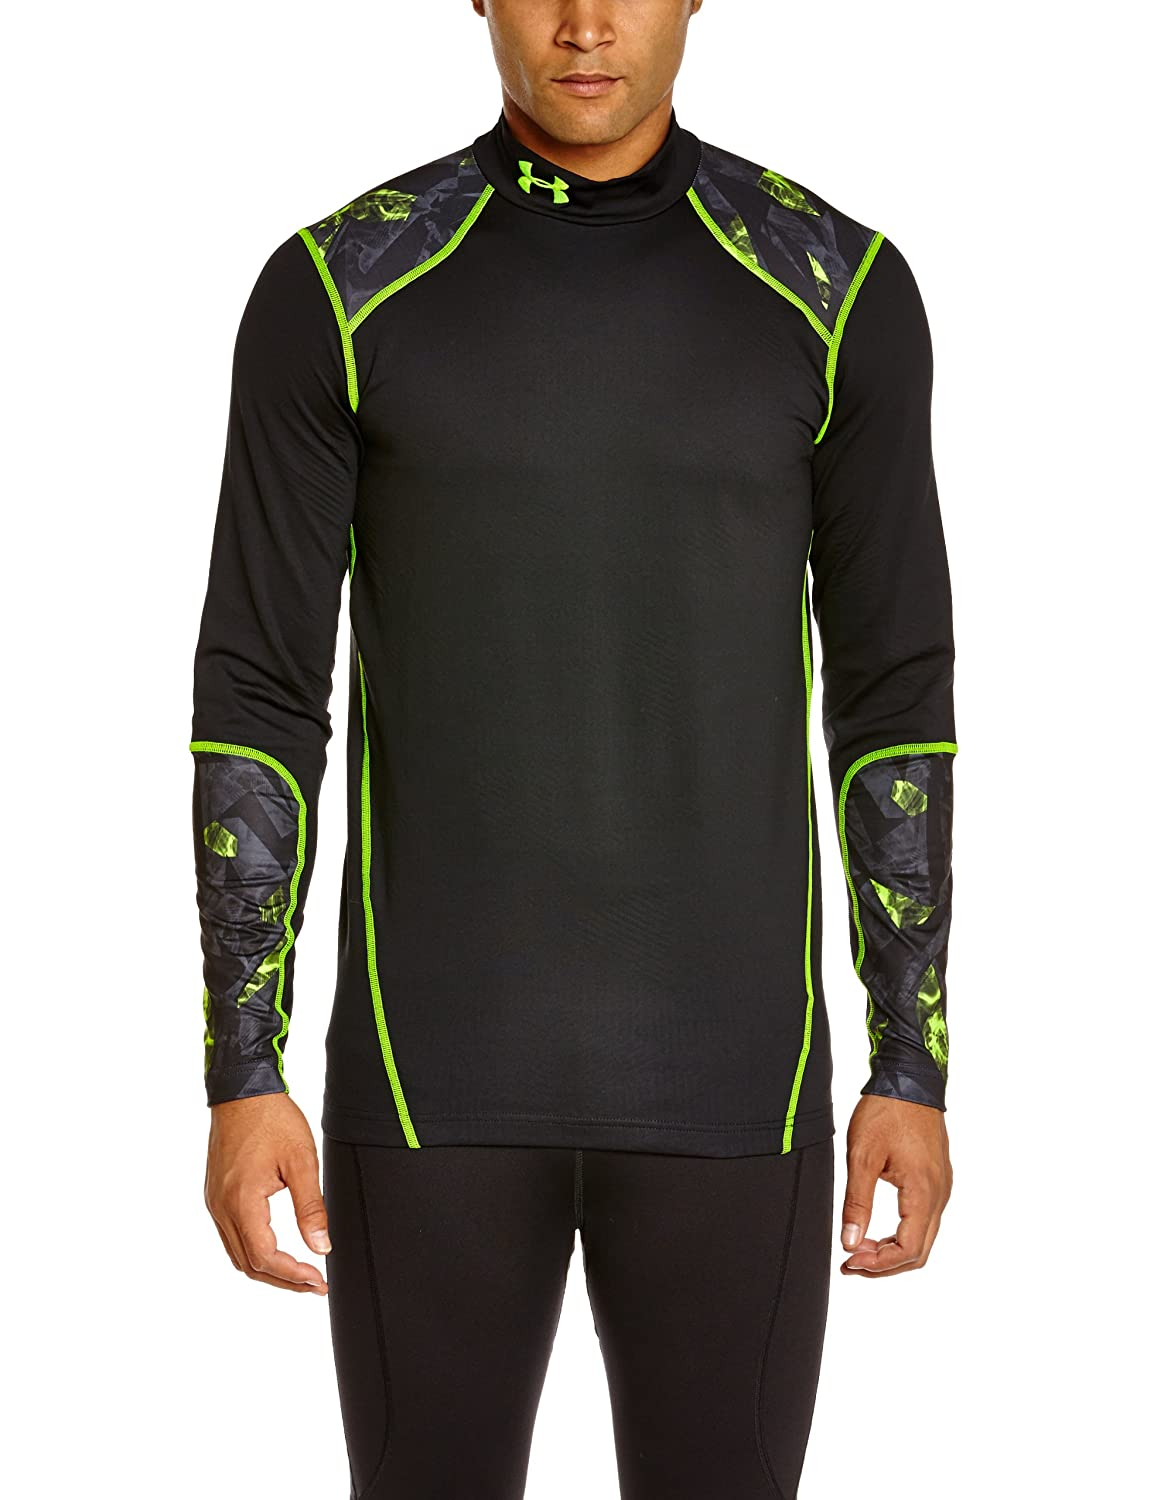 Under Armour Men's CGI Evo Mock